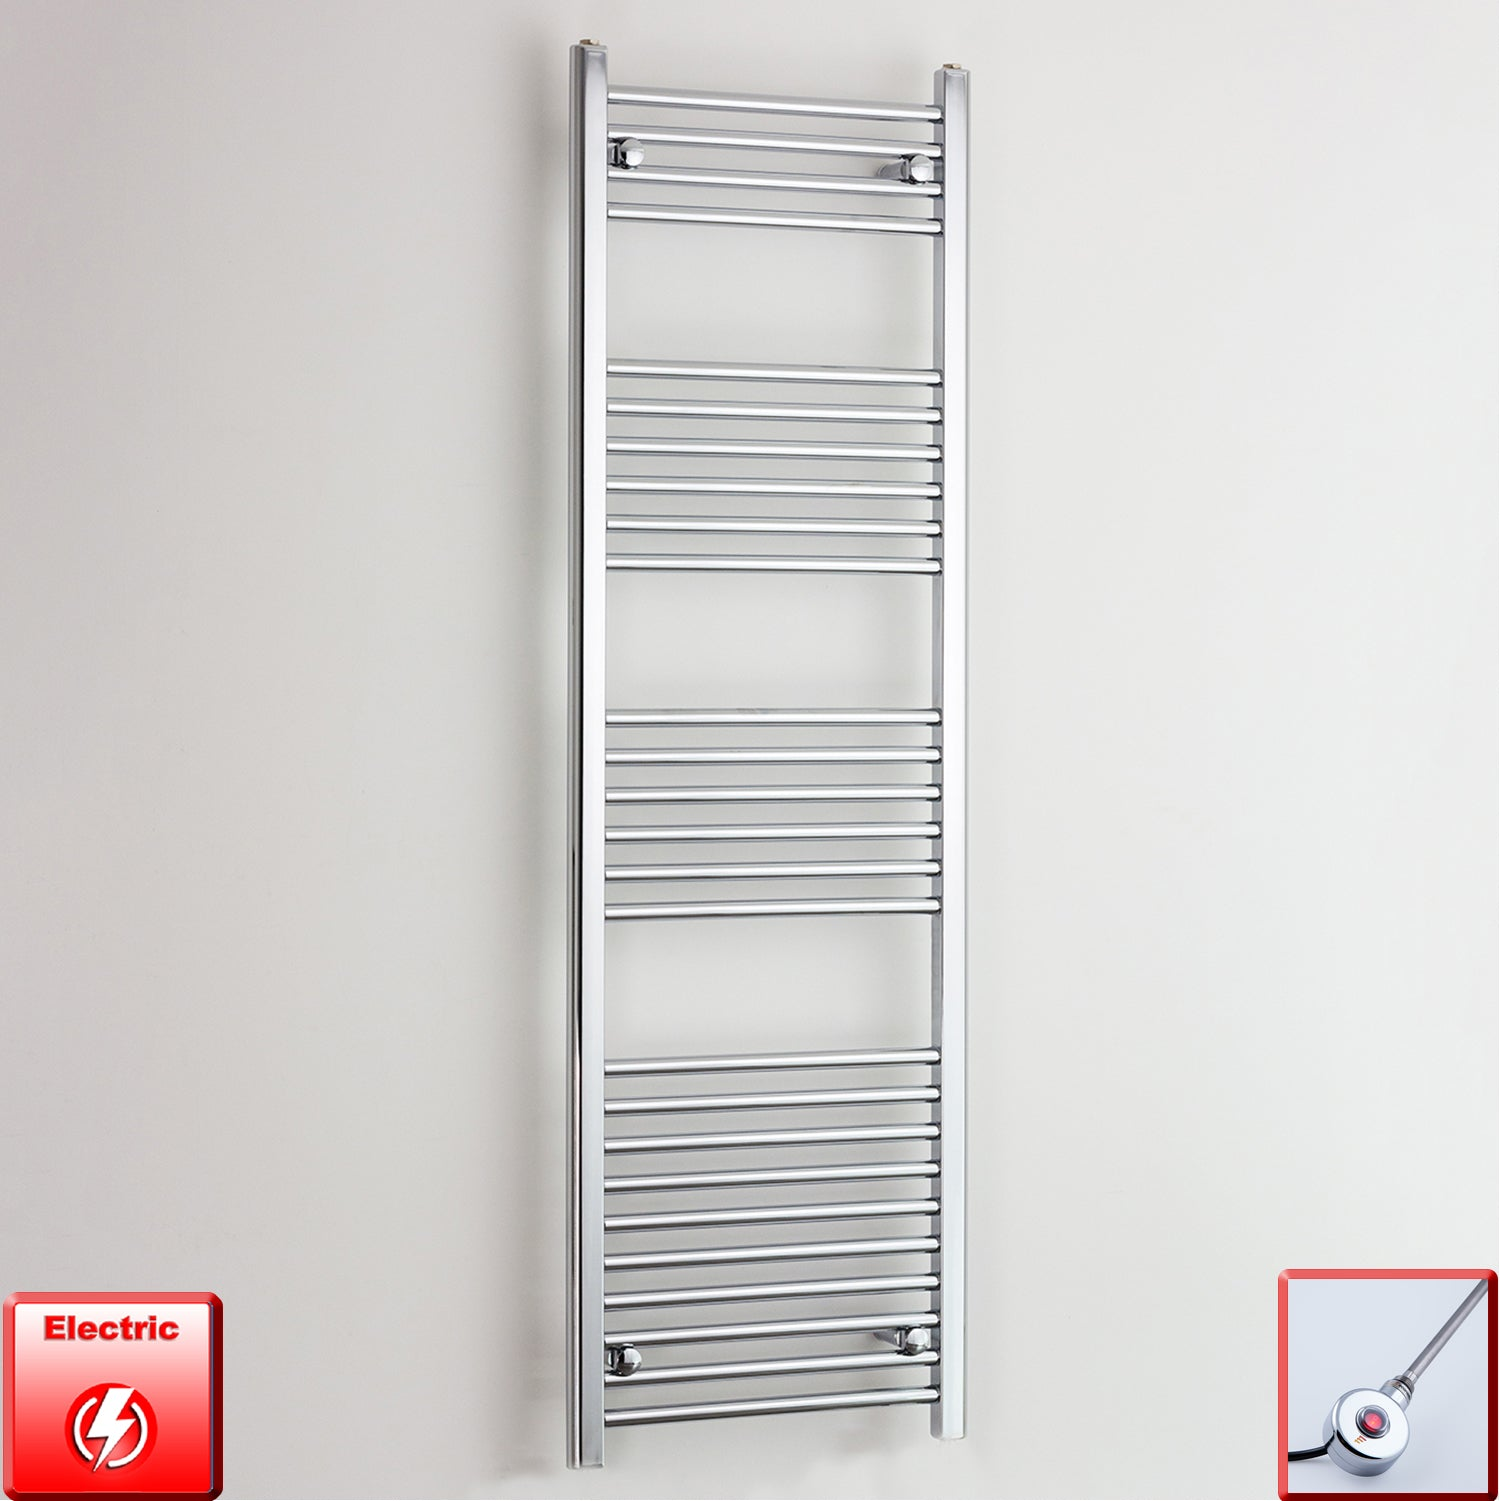 500mm Wide 1800mm High Pre-Filled Chrome Electric Towel Rail Radiator With Ecoradco on off Single Heat Element